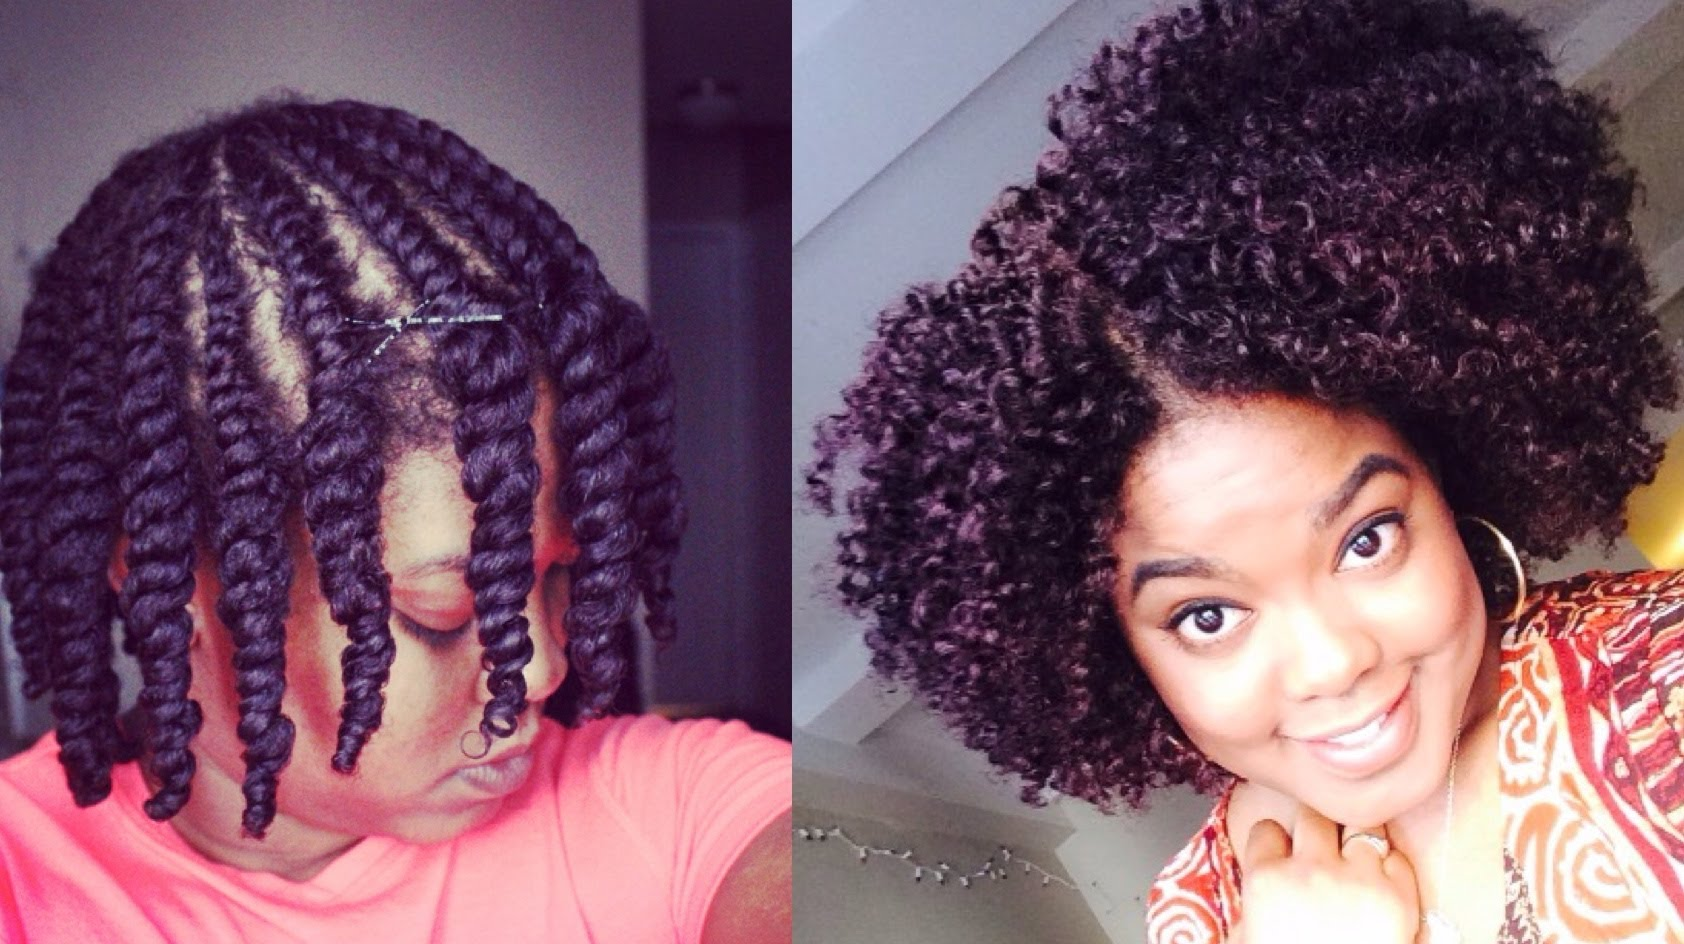 Let It All Hang Out With Twist Outs Braid Outs Bantu Knots Archives Page 3 Of 3 Adore Natural Me